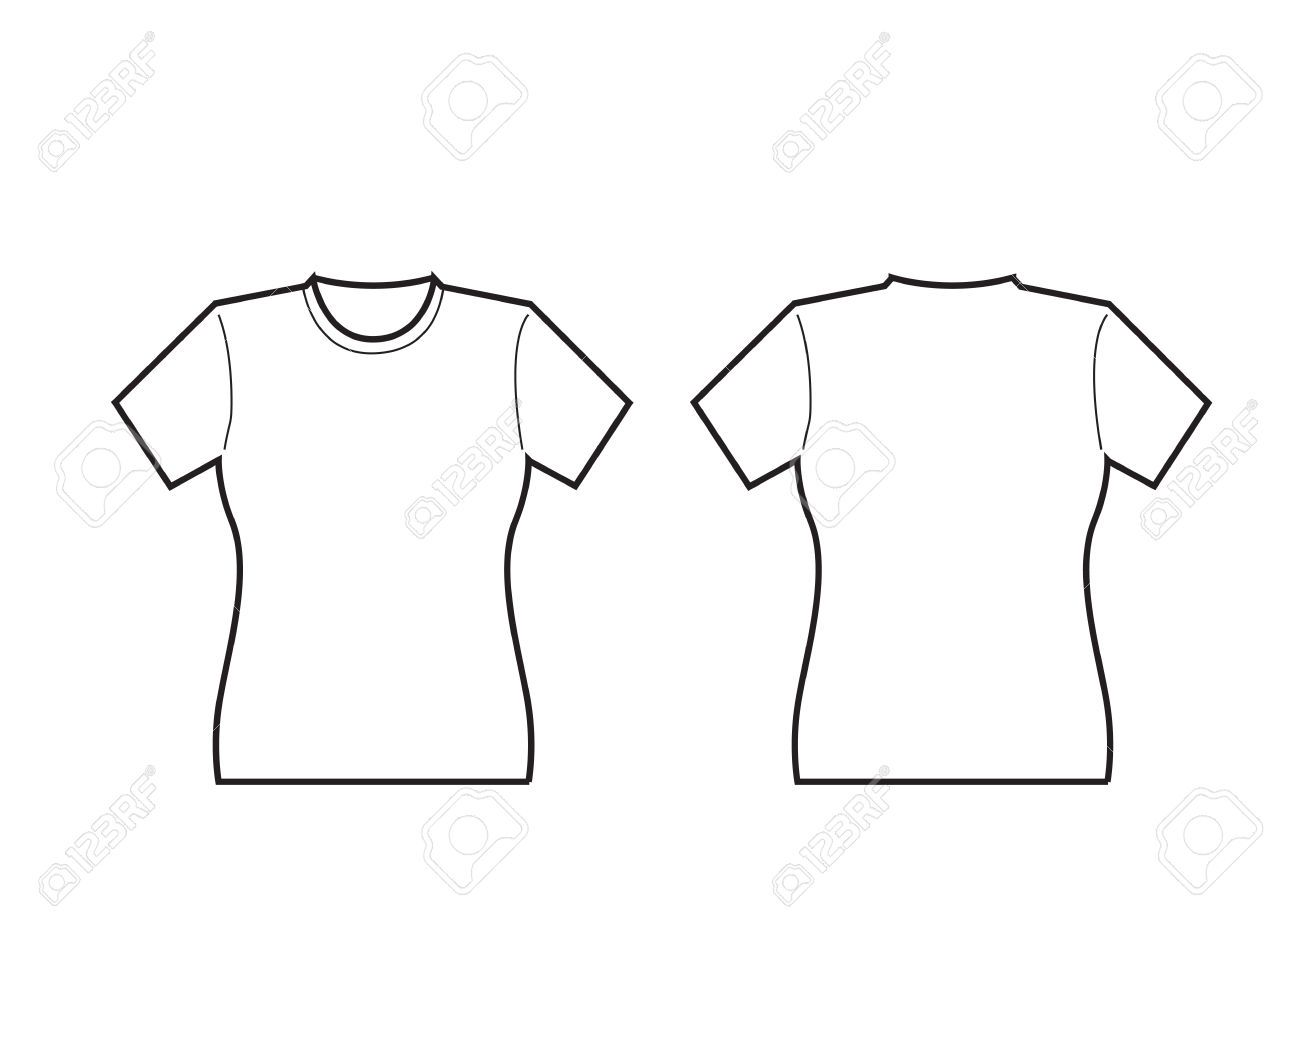 t-shirt template - Google zoeken | art centers | Pinterest ...